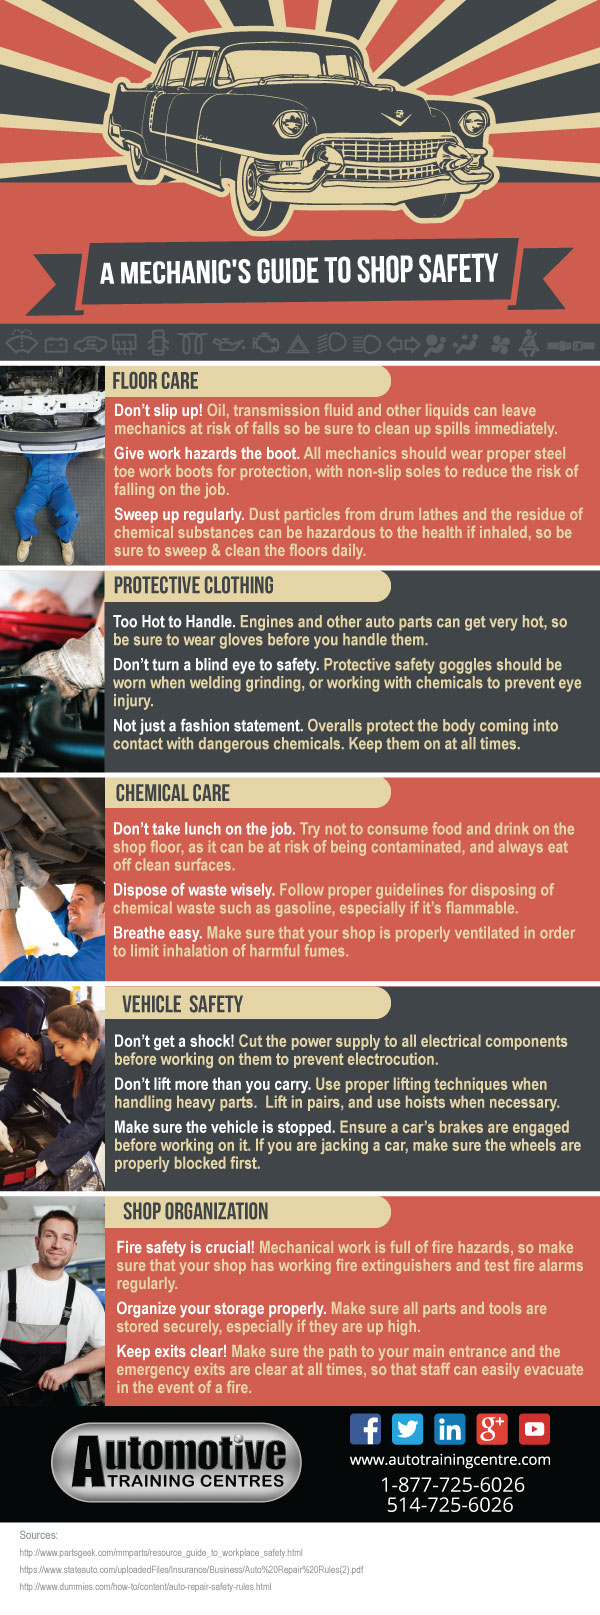 Infographic: A Mechanic's Guide to Shop Safety